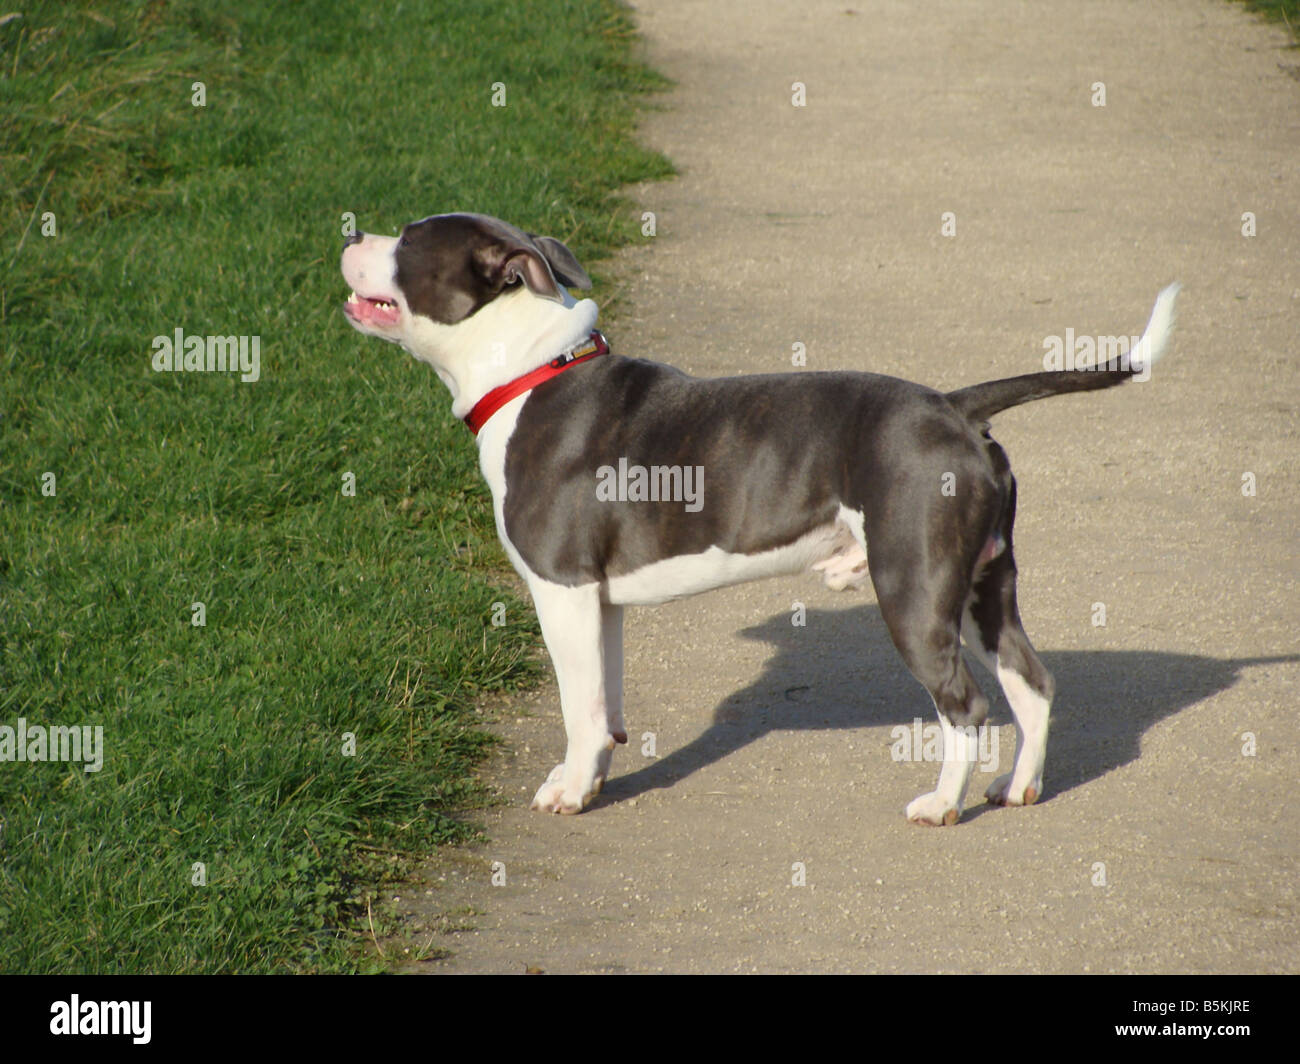 A Staffordshire bull terrier(blue). - Stock Image